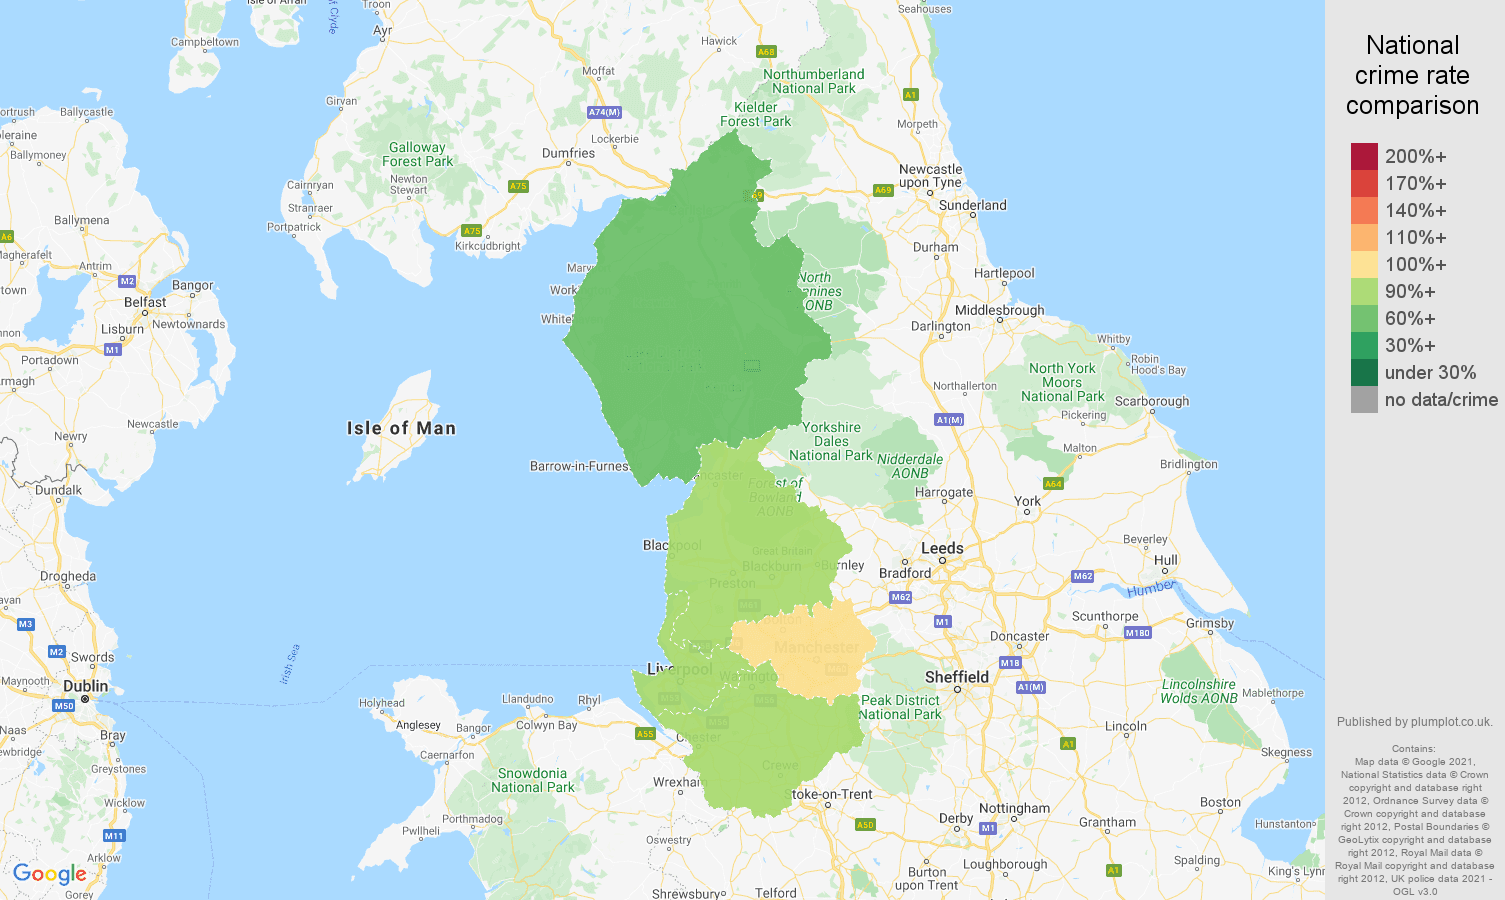 North West shoplifting crime rate comparison map